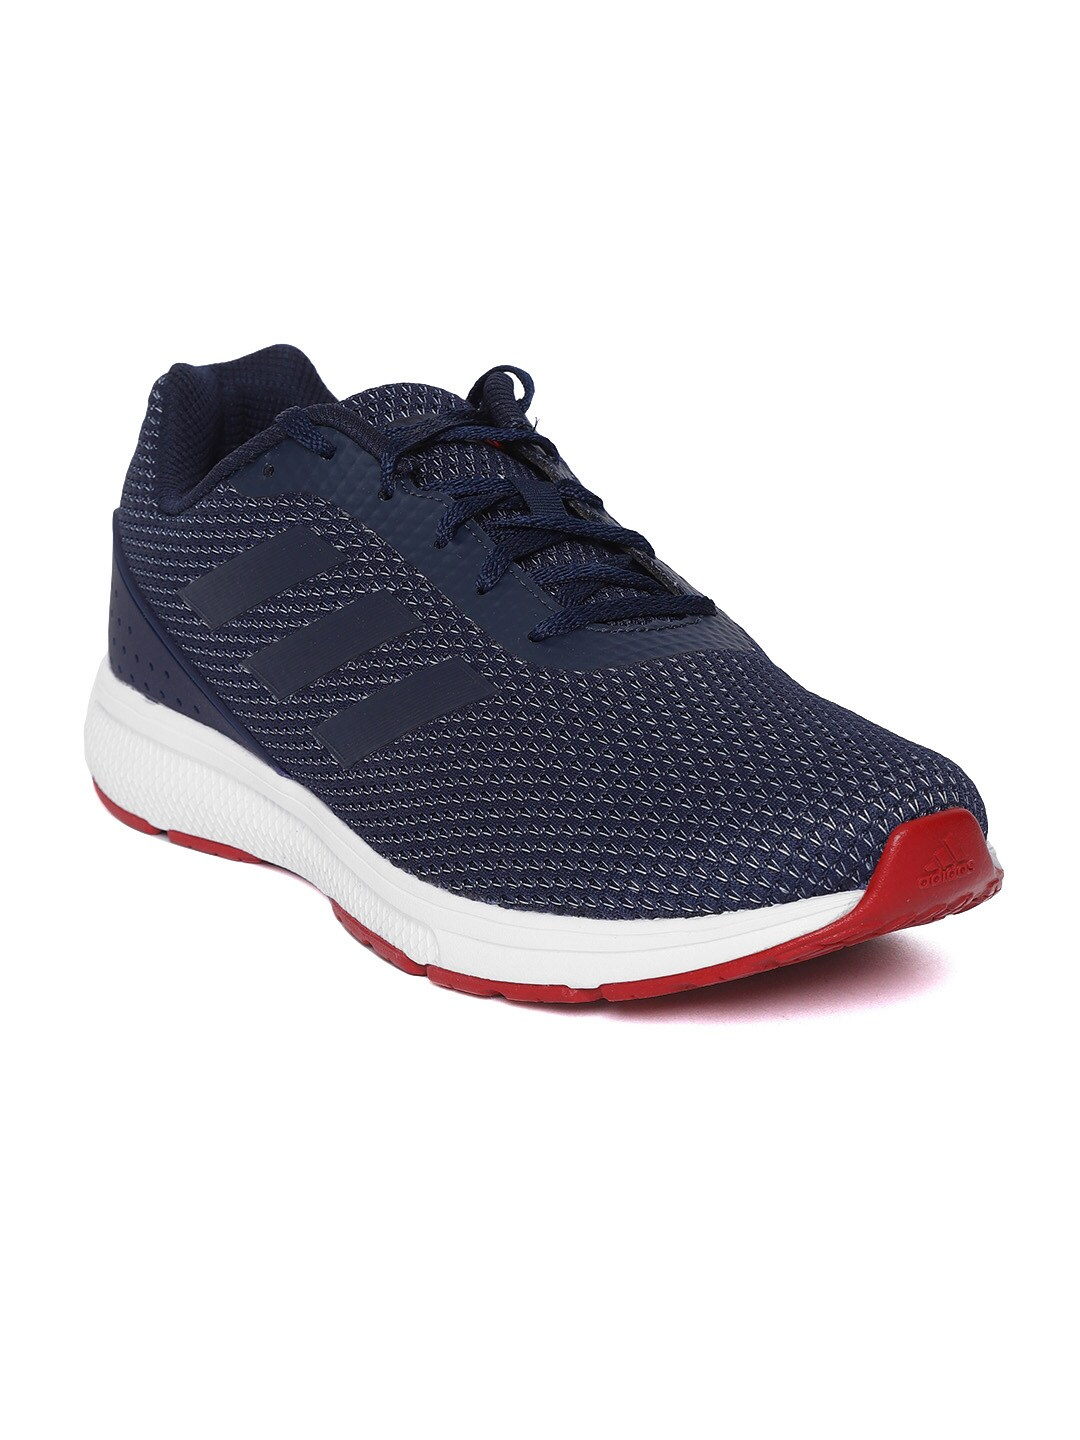 df8580f6b4 Adidas Shoes - Buy Adidas Shoes for Men   Women Online - Myntra